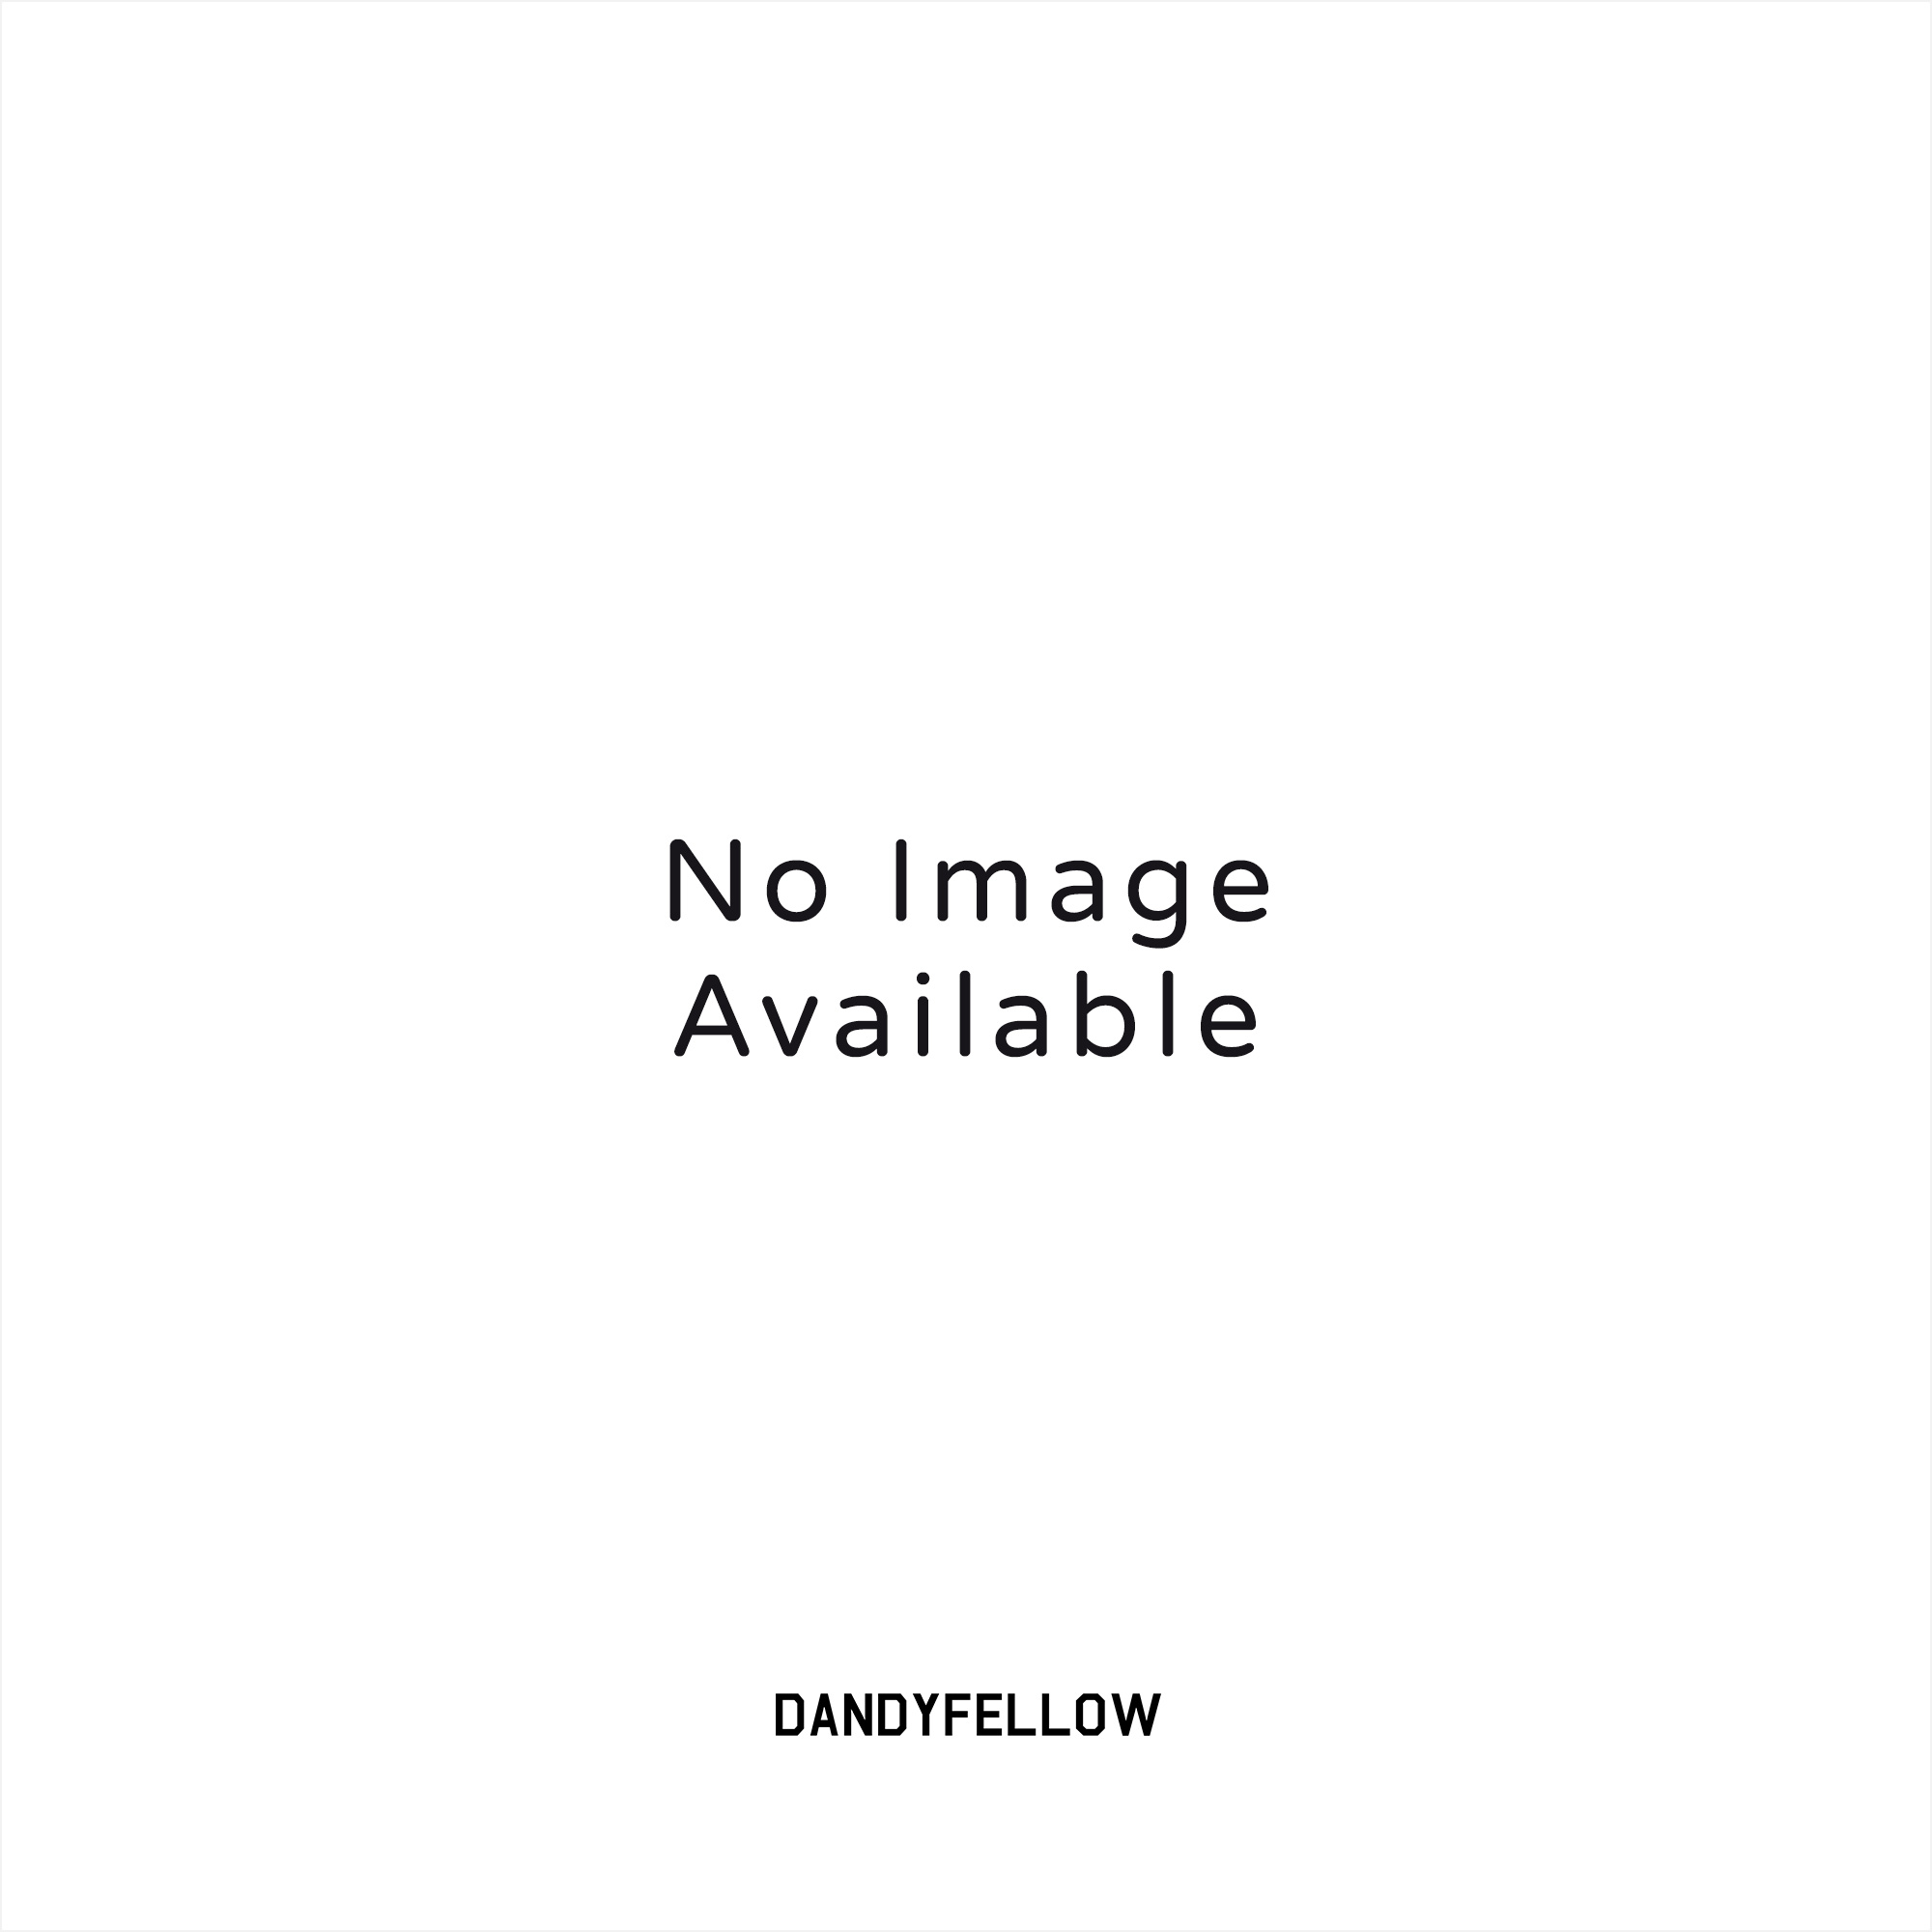 b38620cc468c9 Nike Air Max 95 PRM (Blackened Blue   Camper Royal) at Dandy Fellow